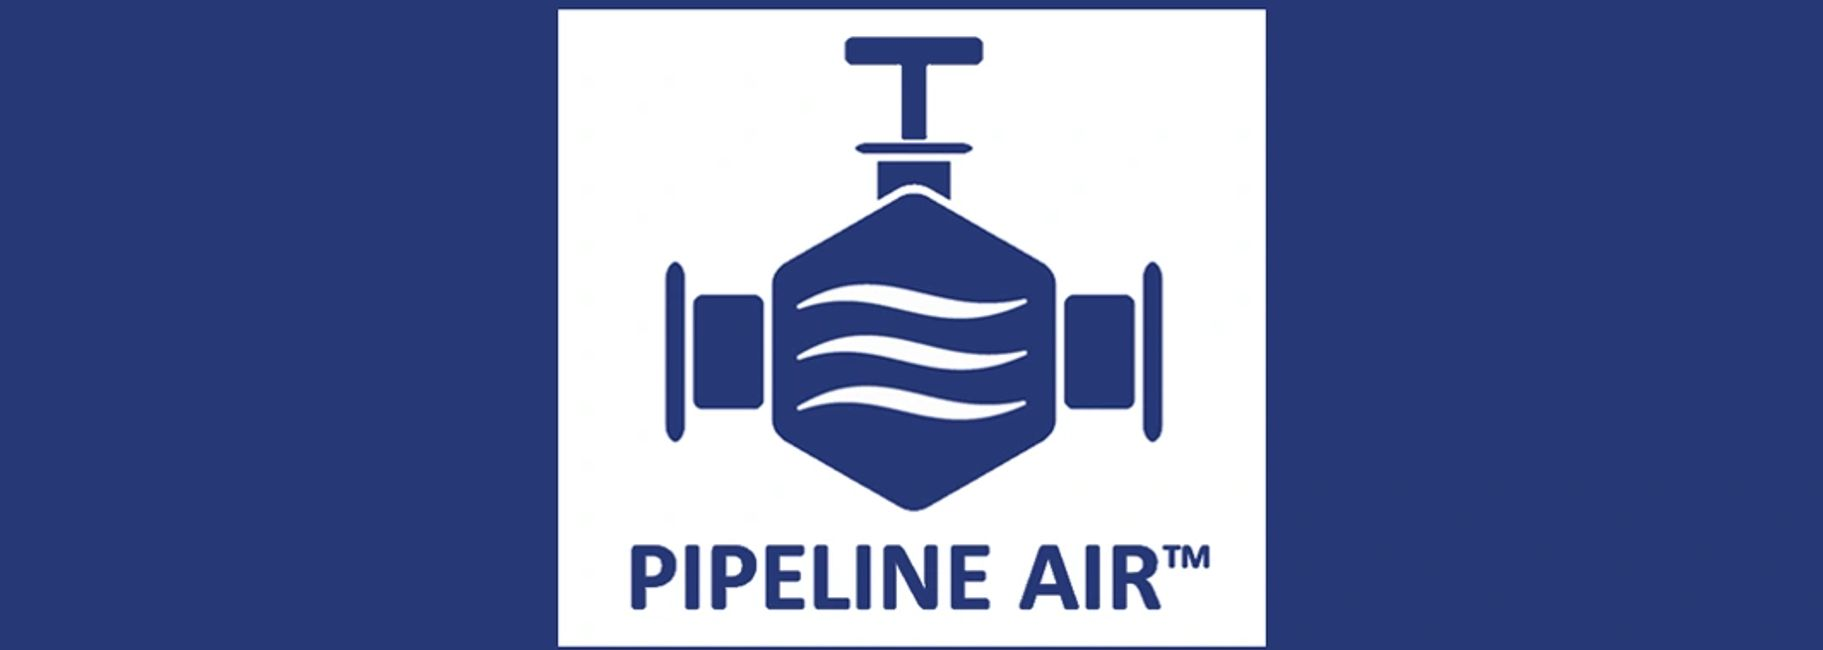 Pipeline air is essentially air-over-the-fence, air as a fourth utility, but in module form.